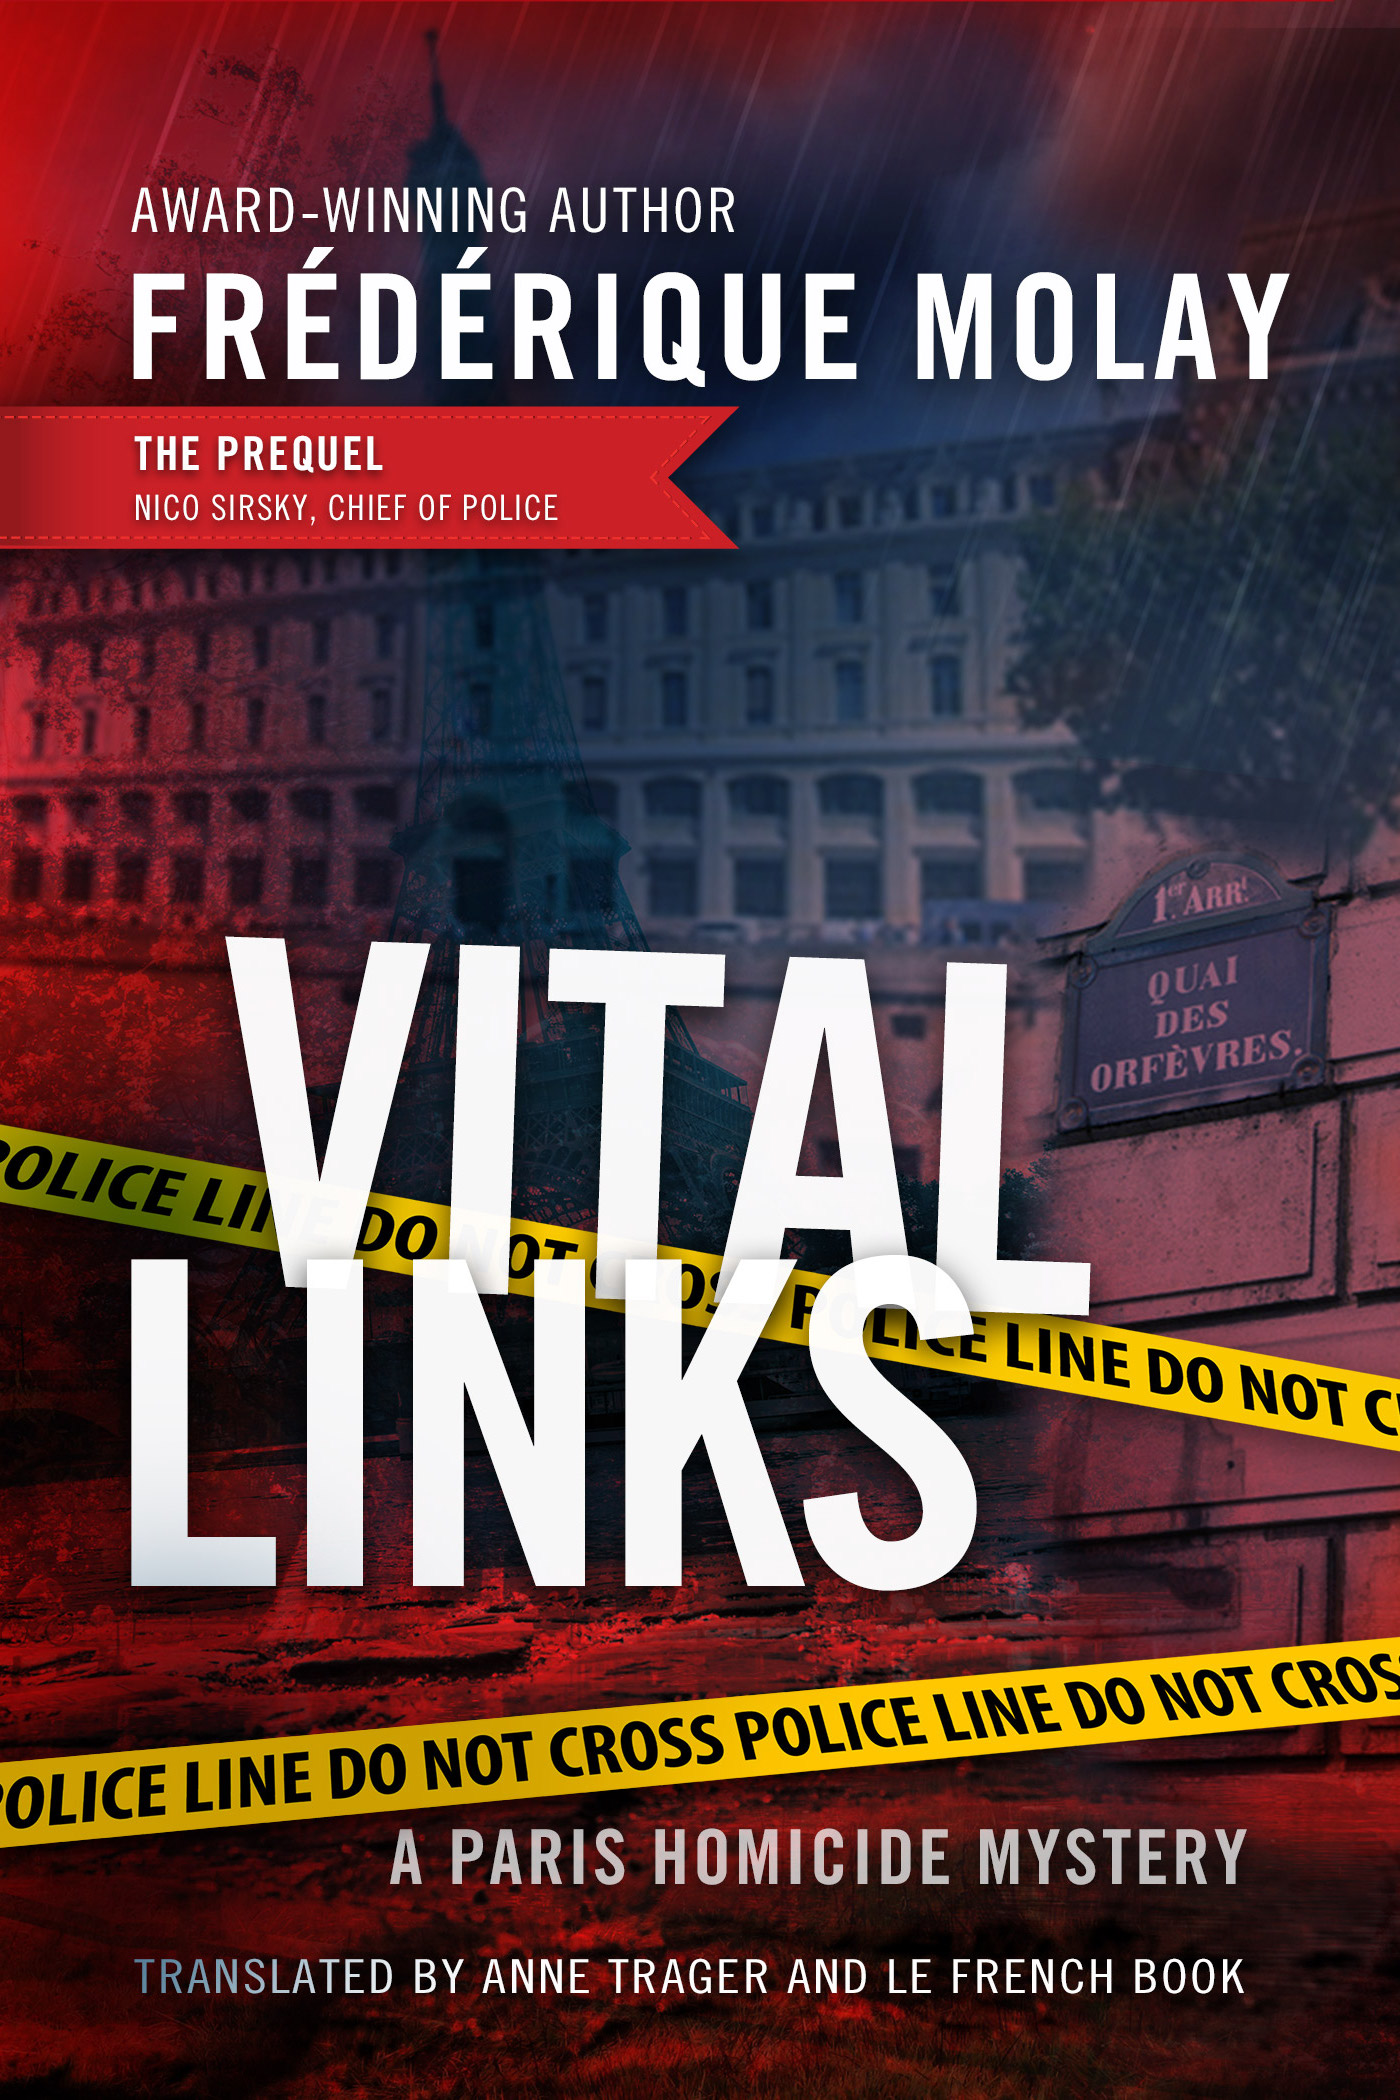 Gritty police procedural mystery novel set in Paris.